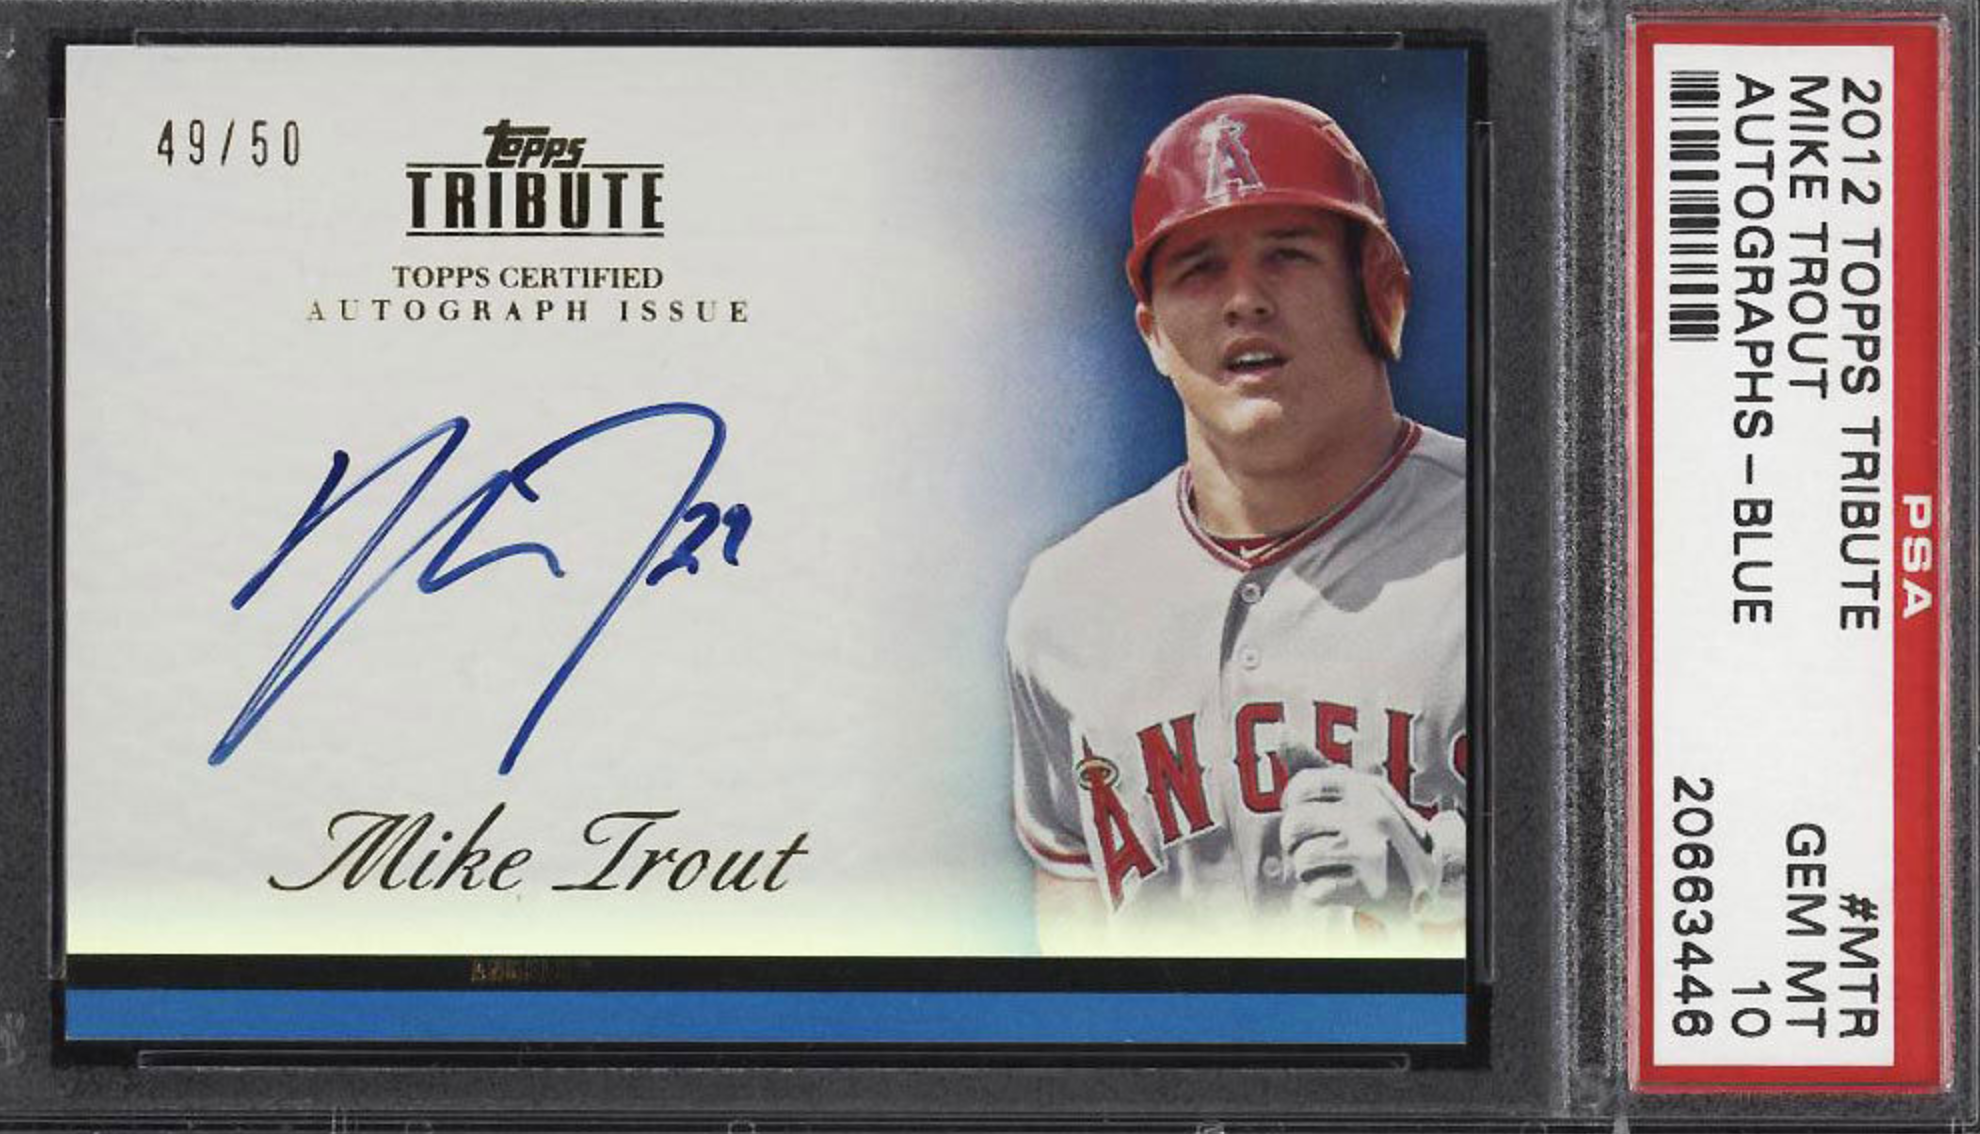 Waiting To Bid On A Mike Trout Rookie Card So Many Available Today